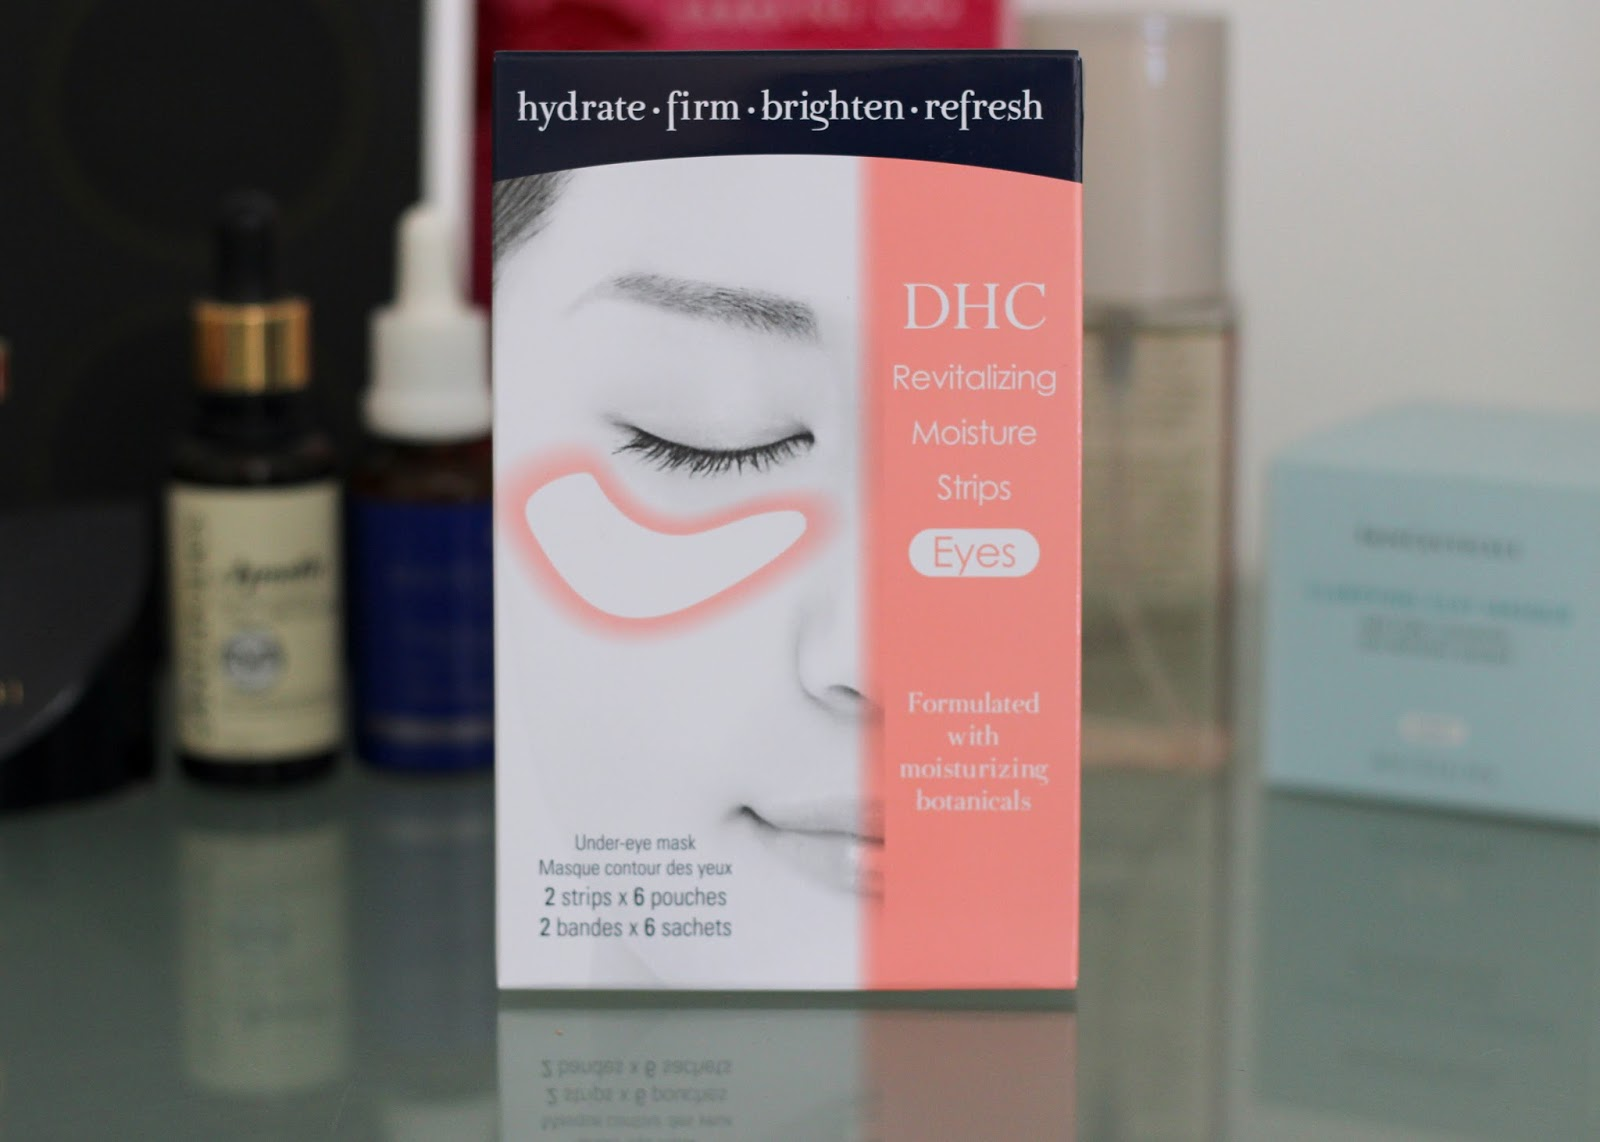 DHC Revitalizing Moisture Strips